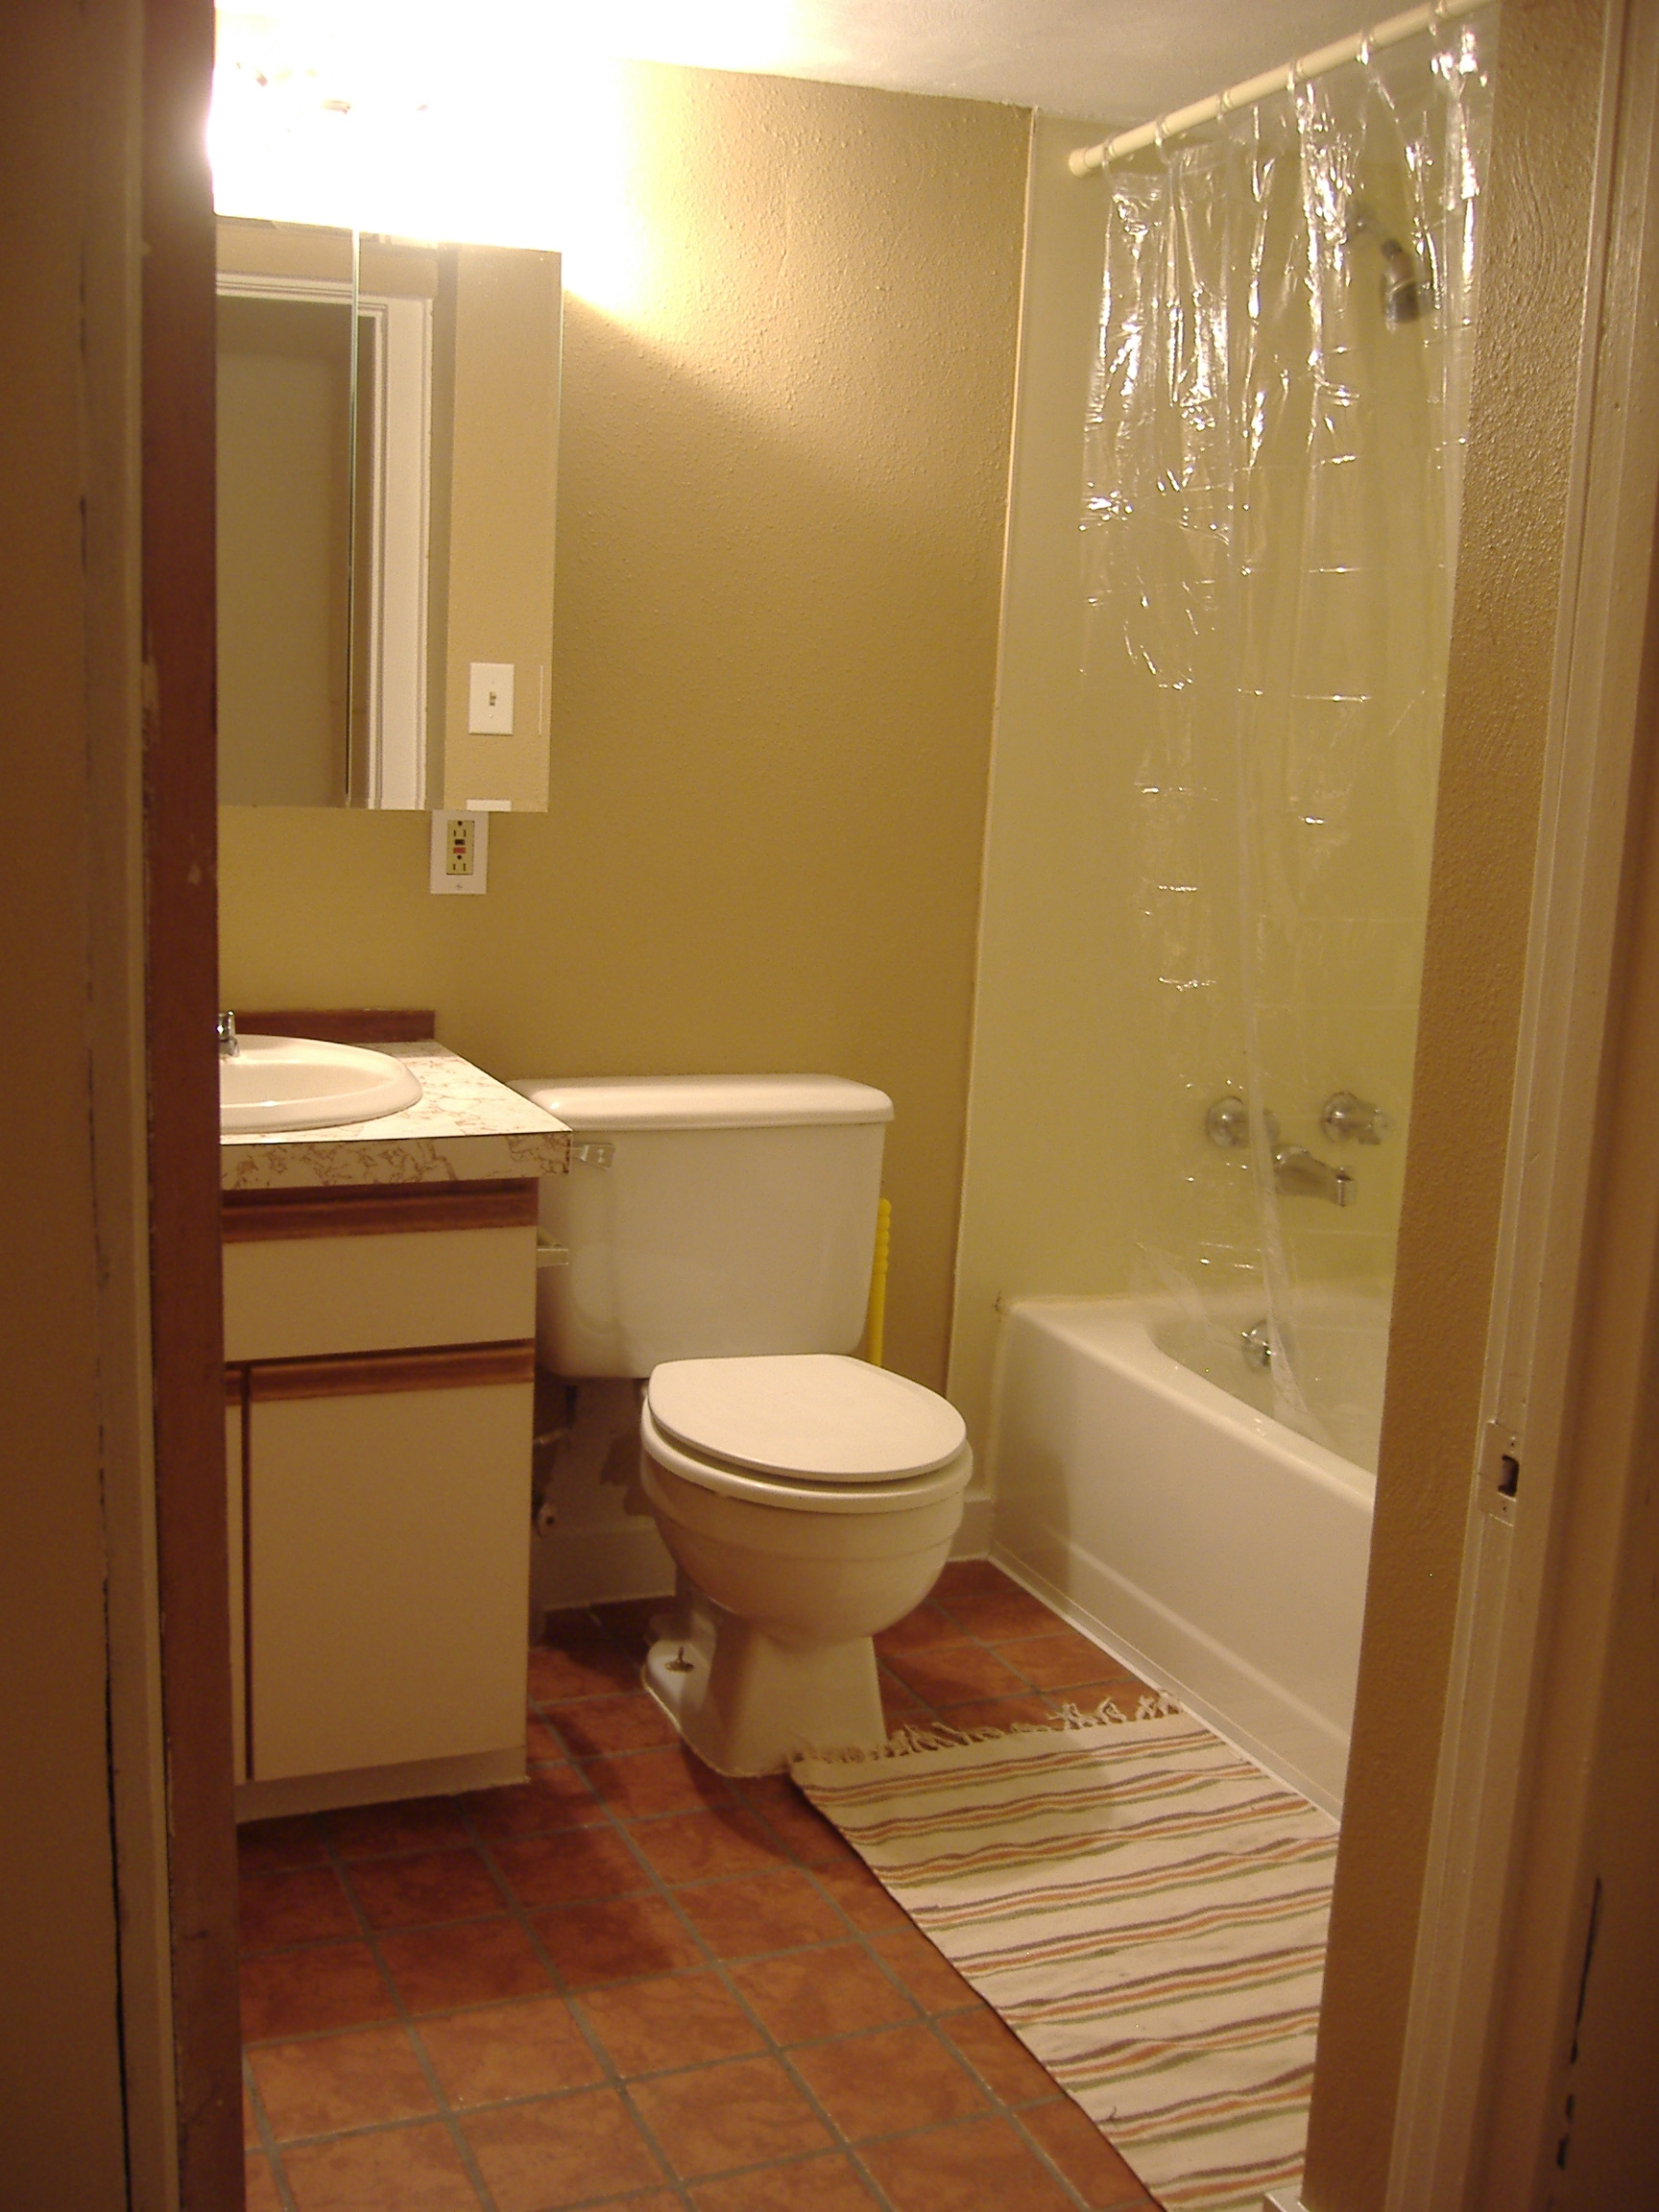 bathroom ideas apartment the basement apartment bathroom remodel take 2 - Apartment Bathroom